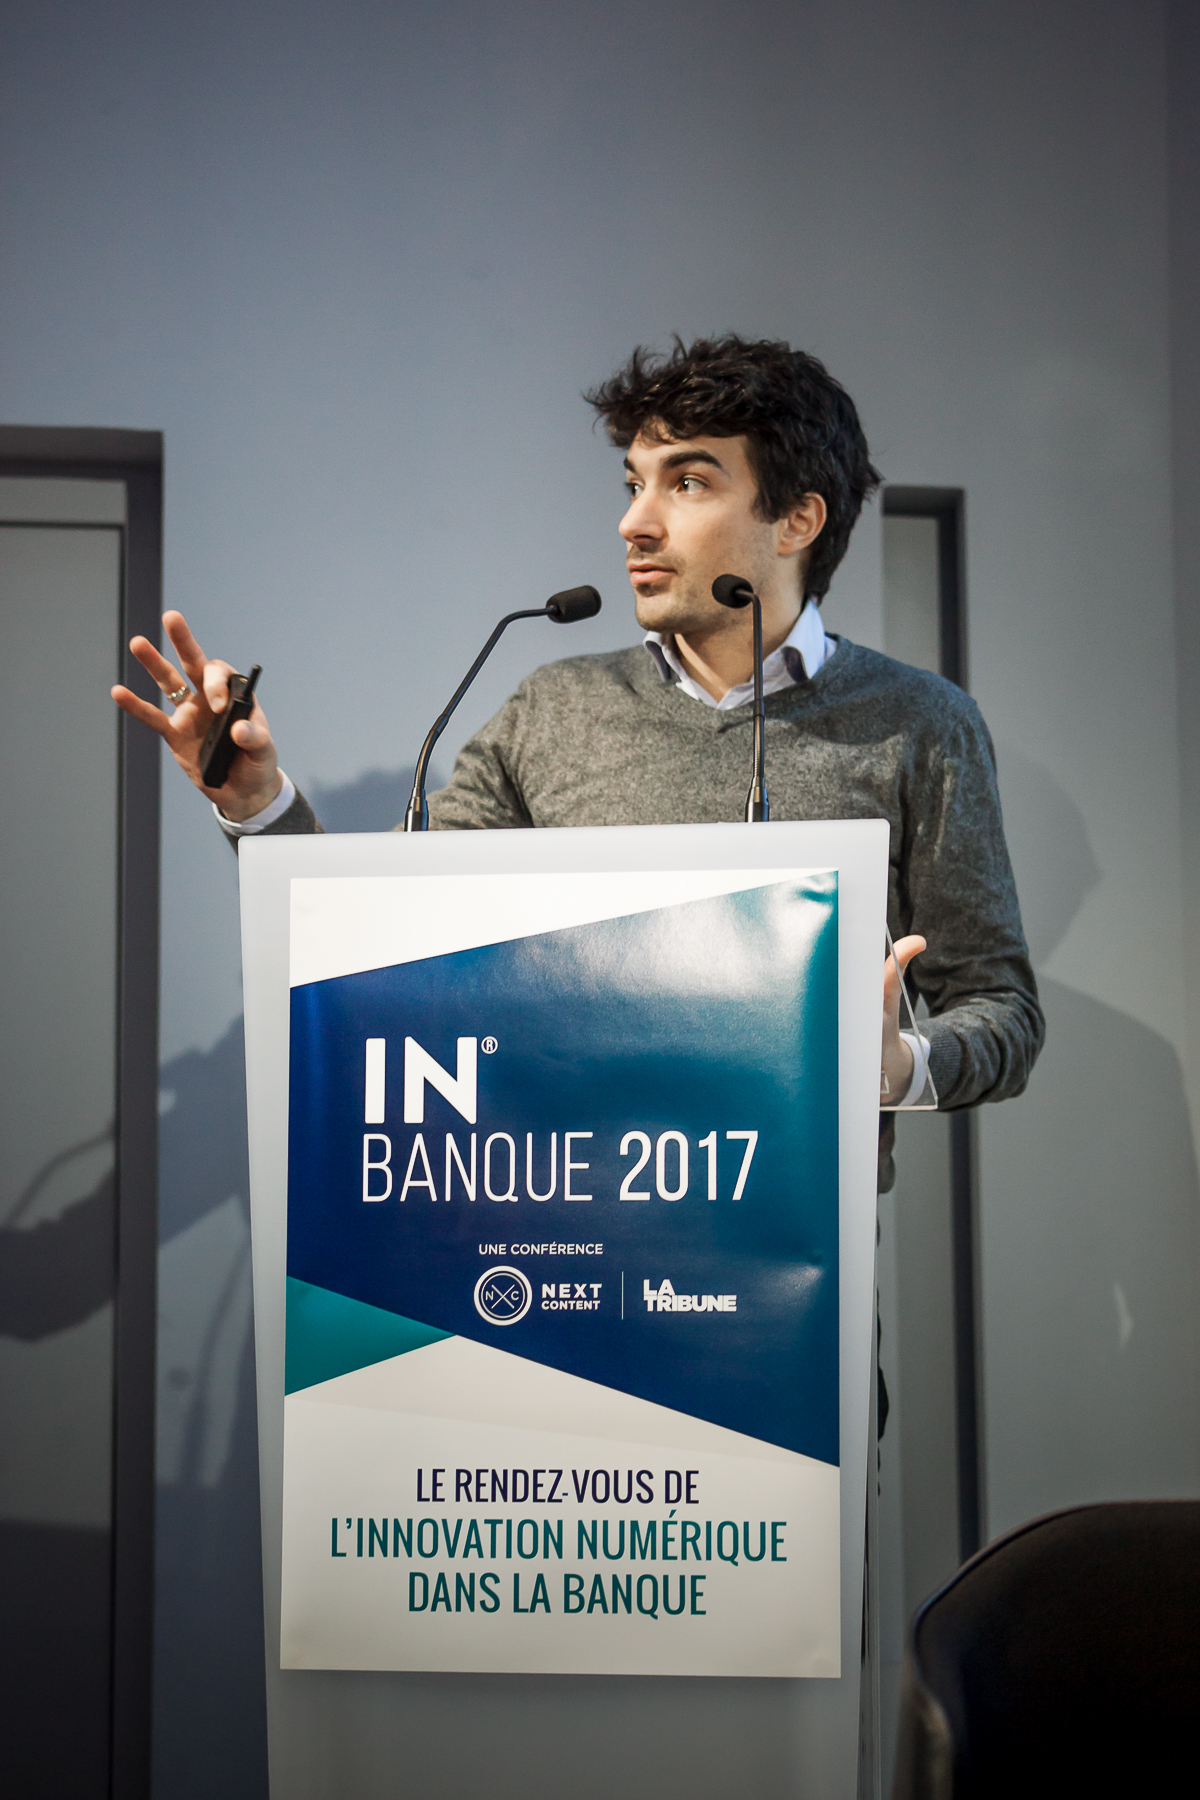 Joan Burkovic (Bankin') - IN BANQUE 2017 - Crédit photo : Guillermo Gomez